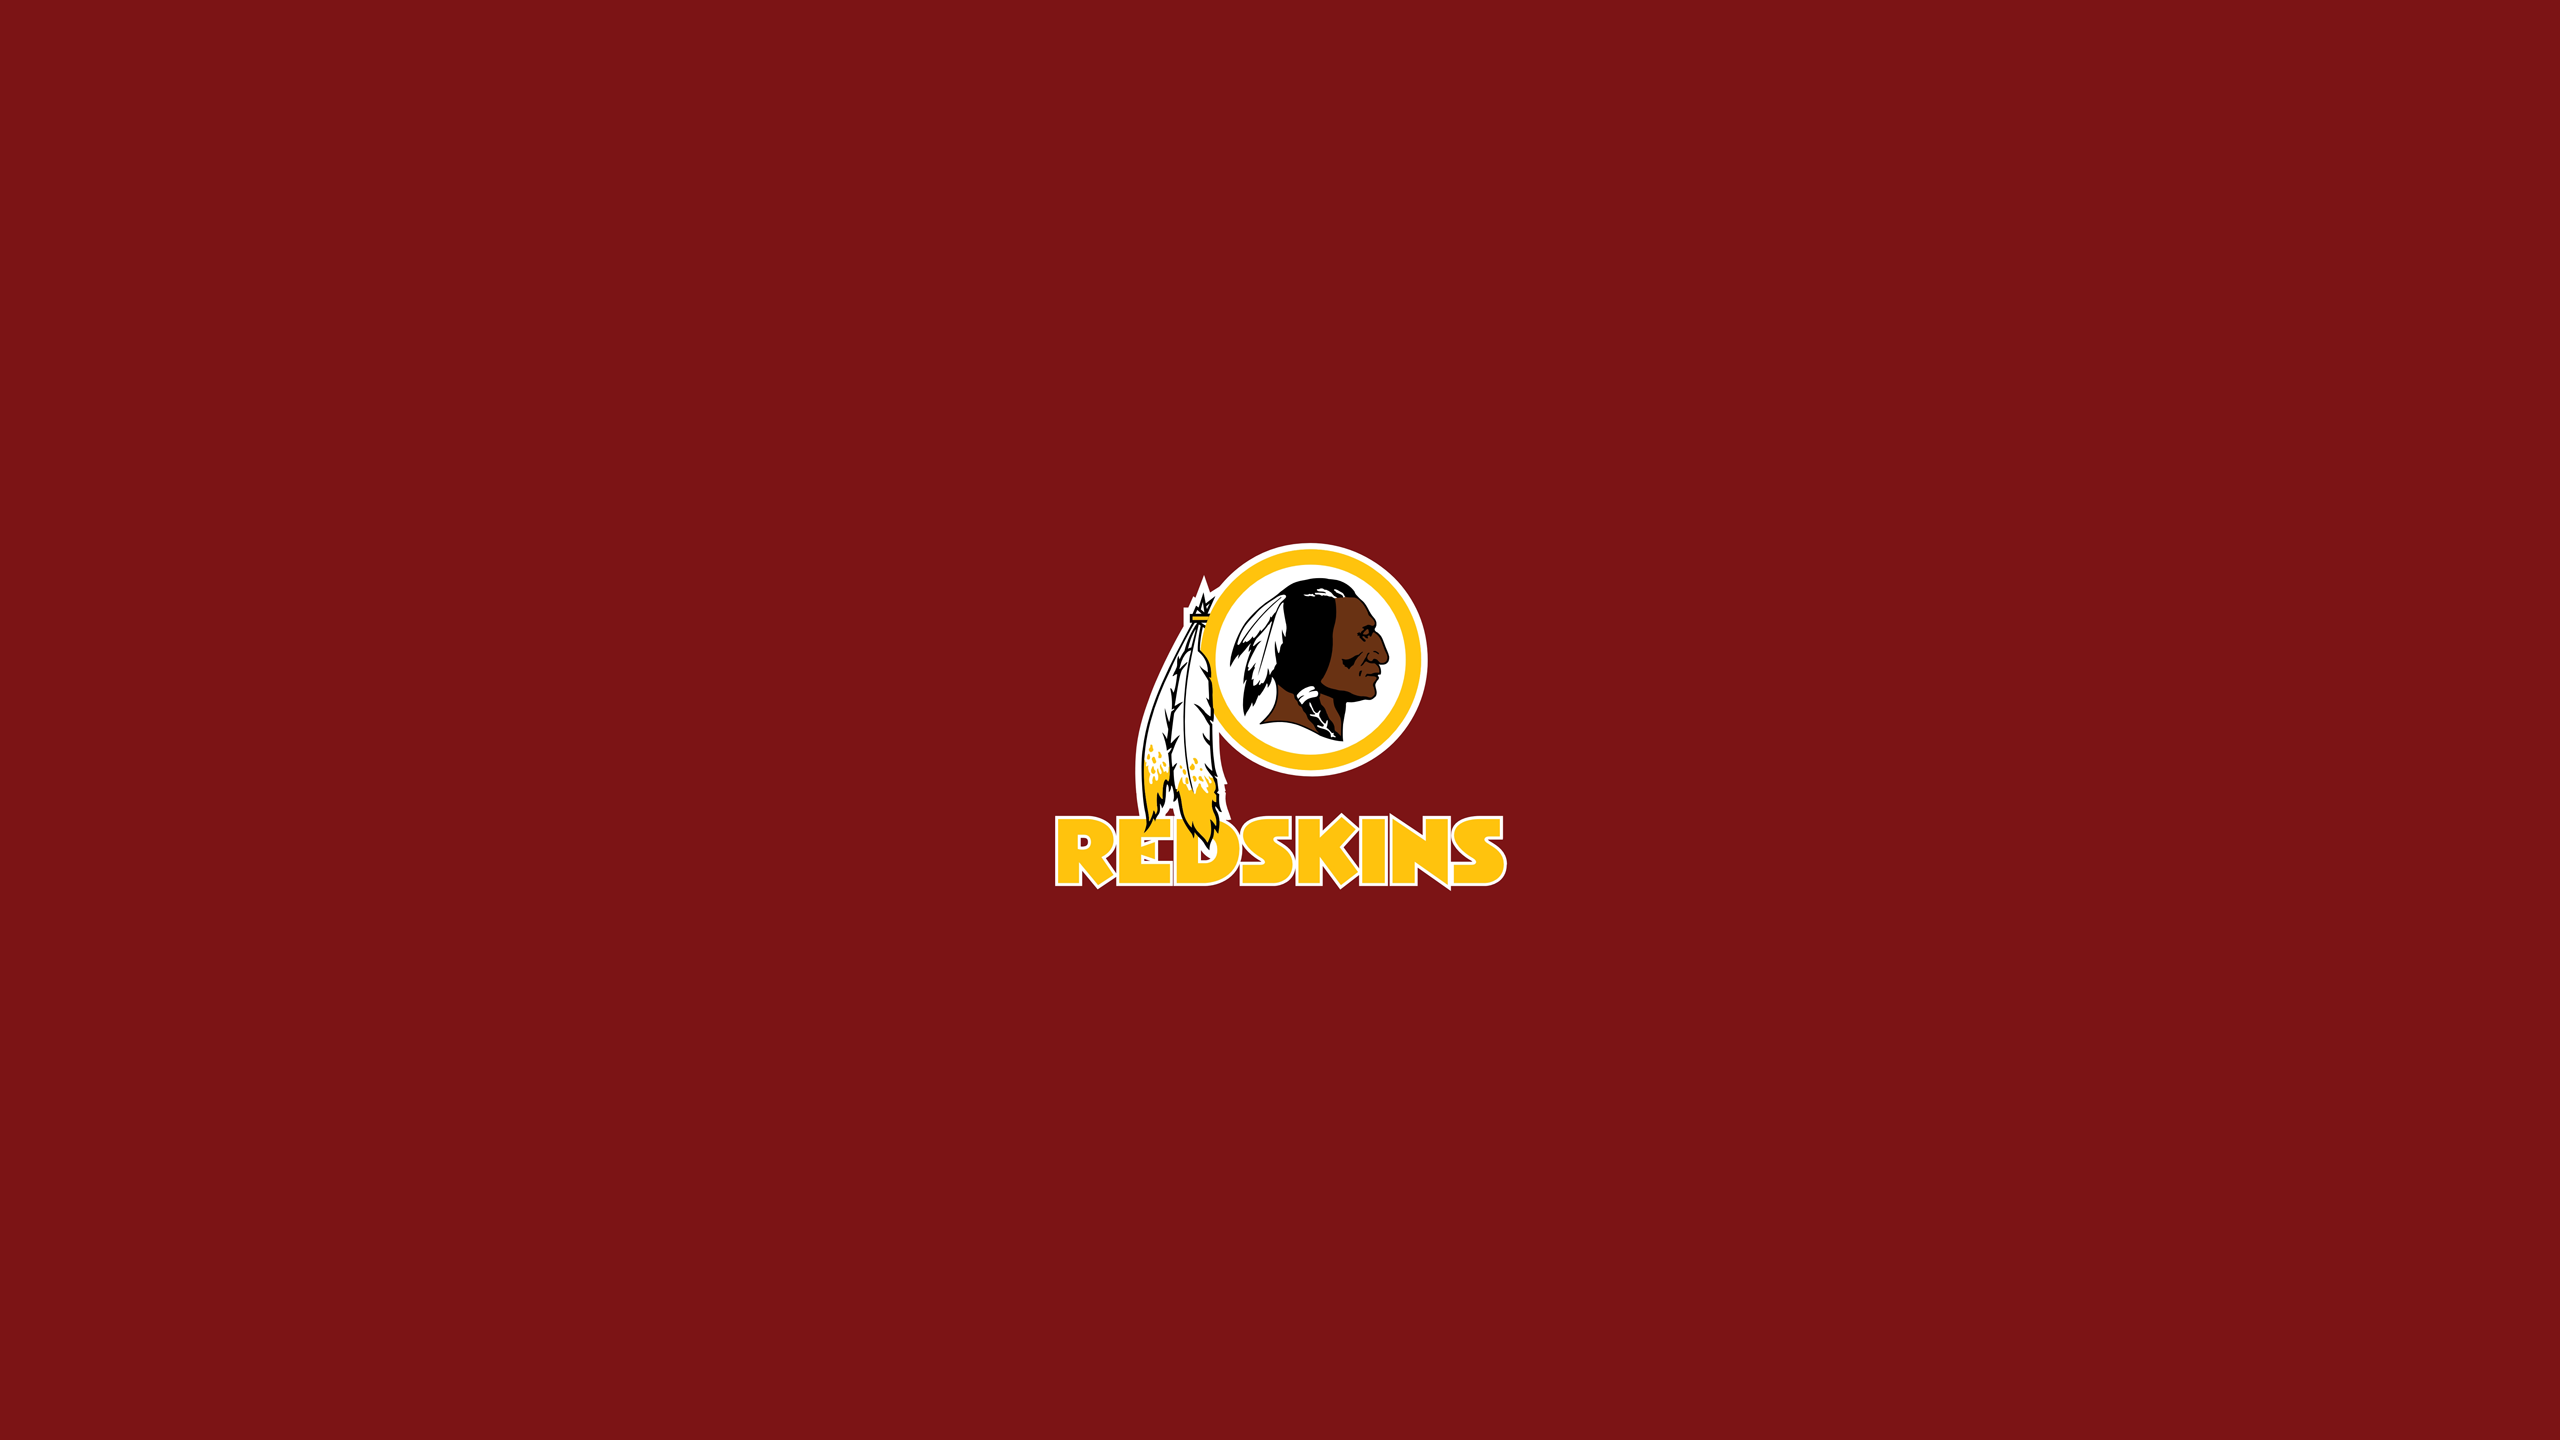 WASHINGTON REDSKINS nfl football hs wallpaper 2560x1440 155255 2560x1440